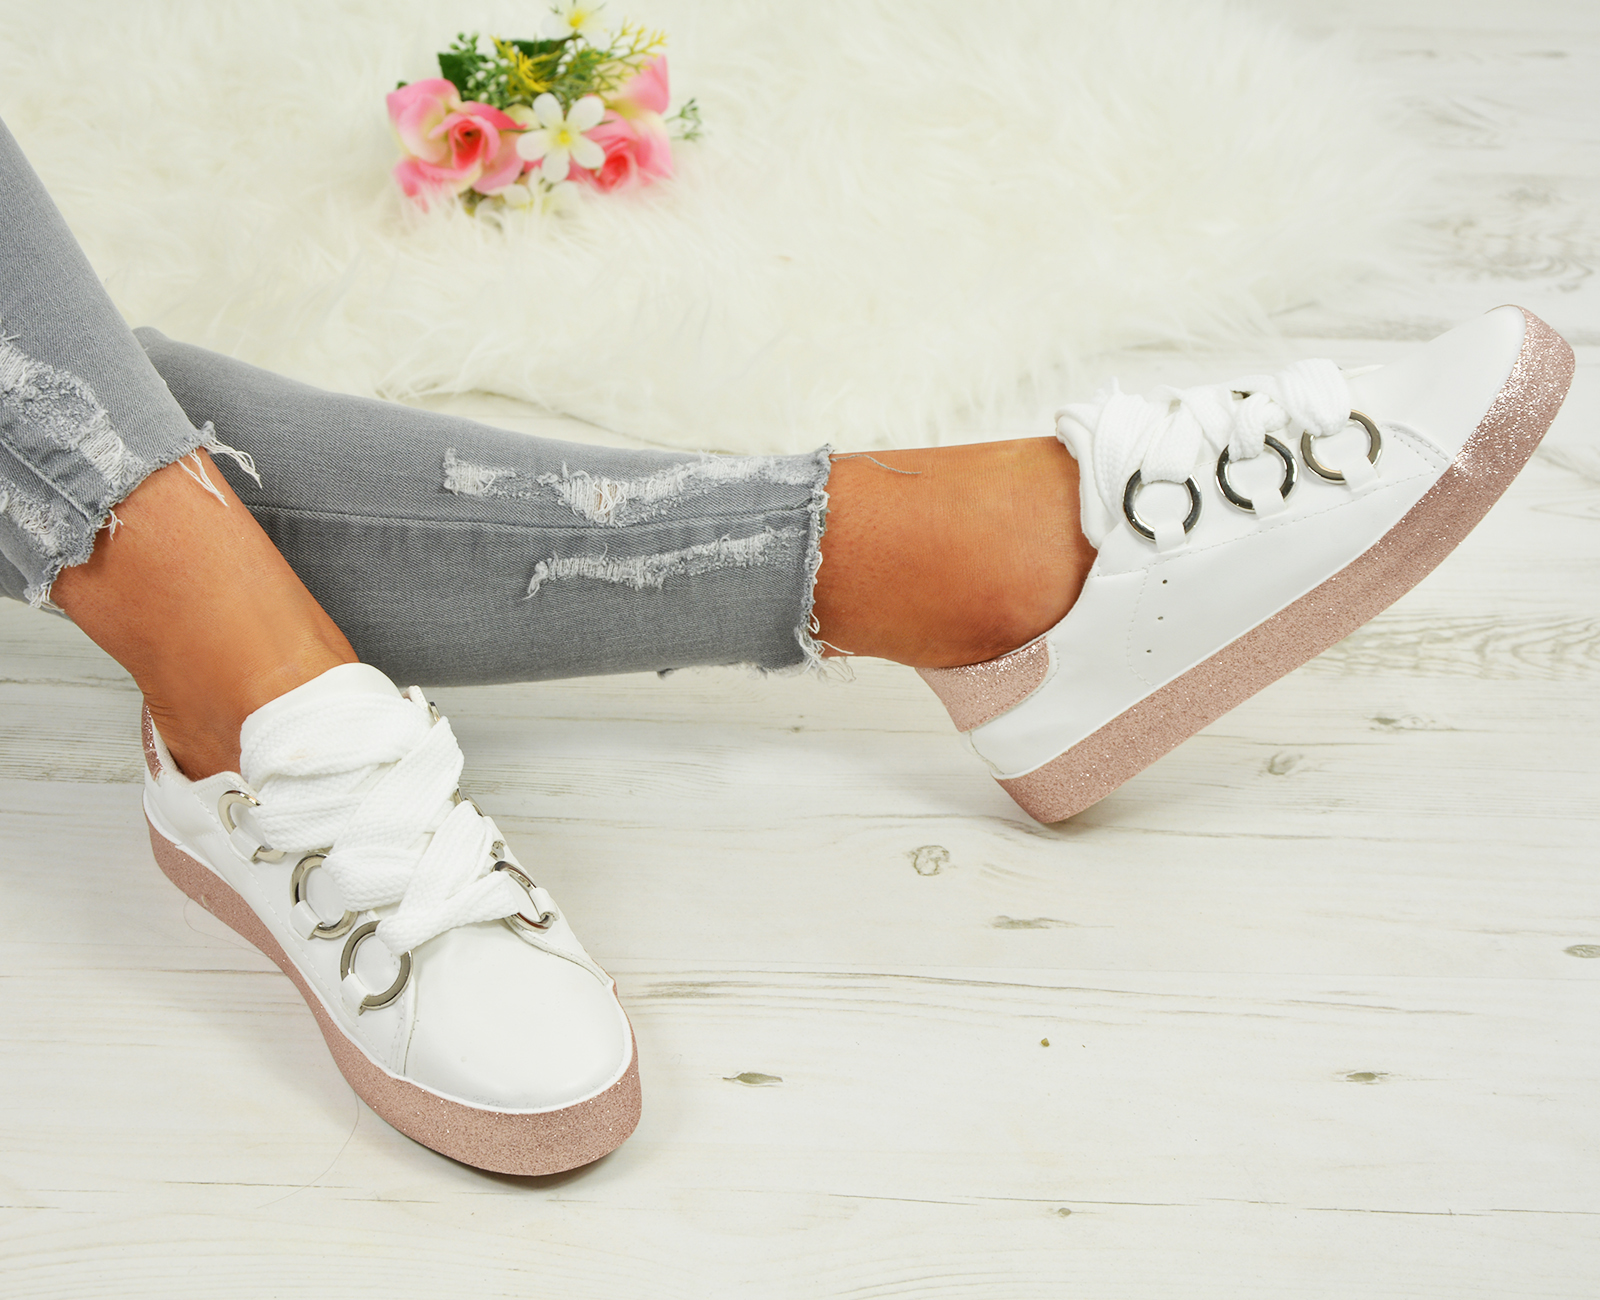 LADIES-WOMENS-GLITTER-SNEAKERS-SPARKLE-TRAINERS-LACE-UP-PLIMSOLL-PUMPS-SHOES thumbnail 23